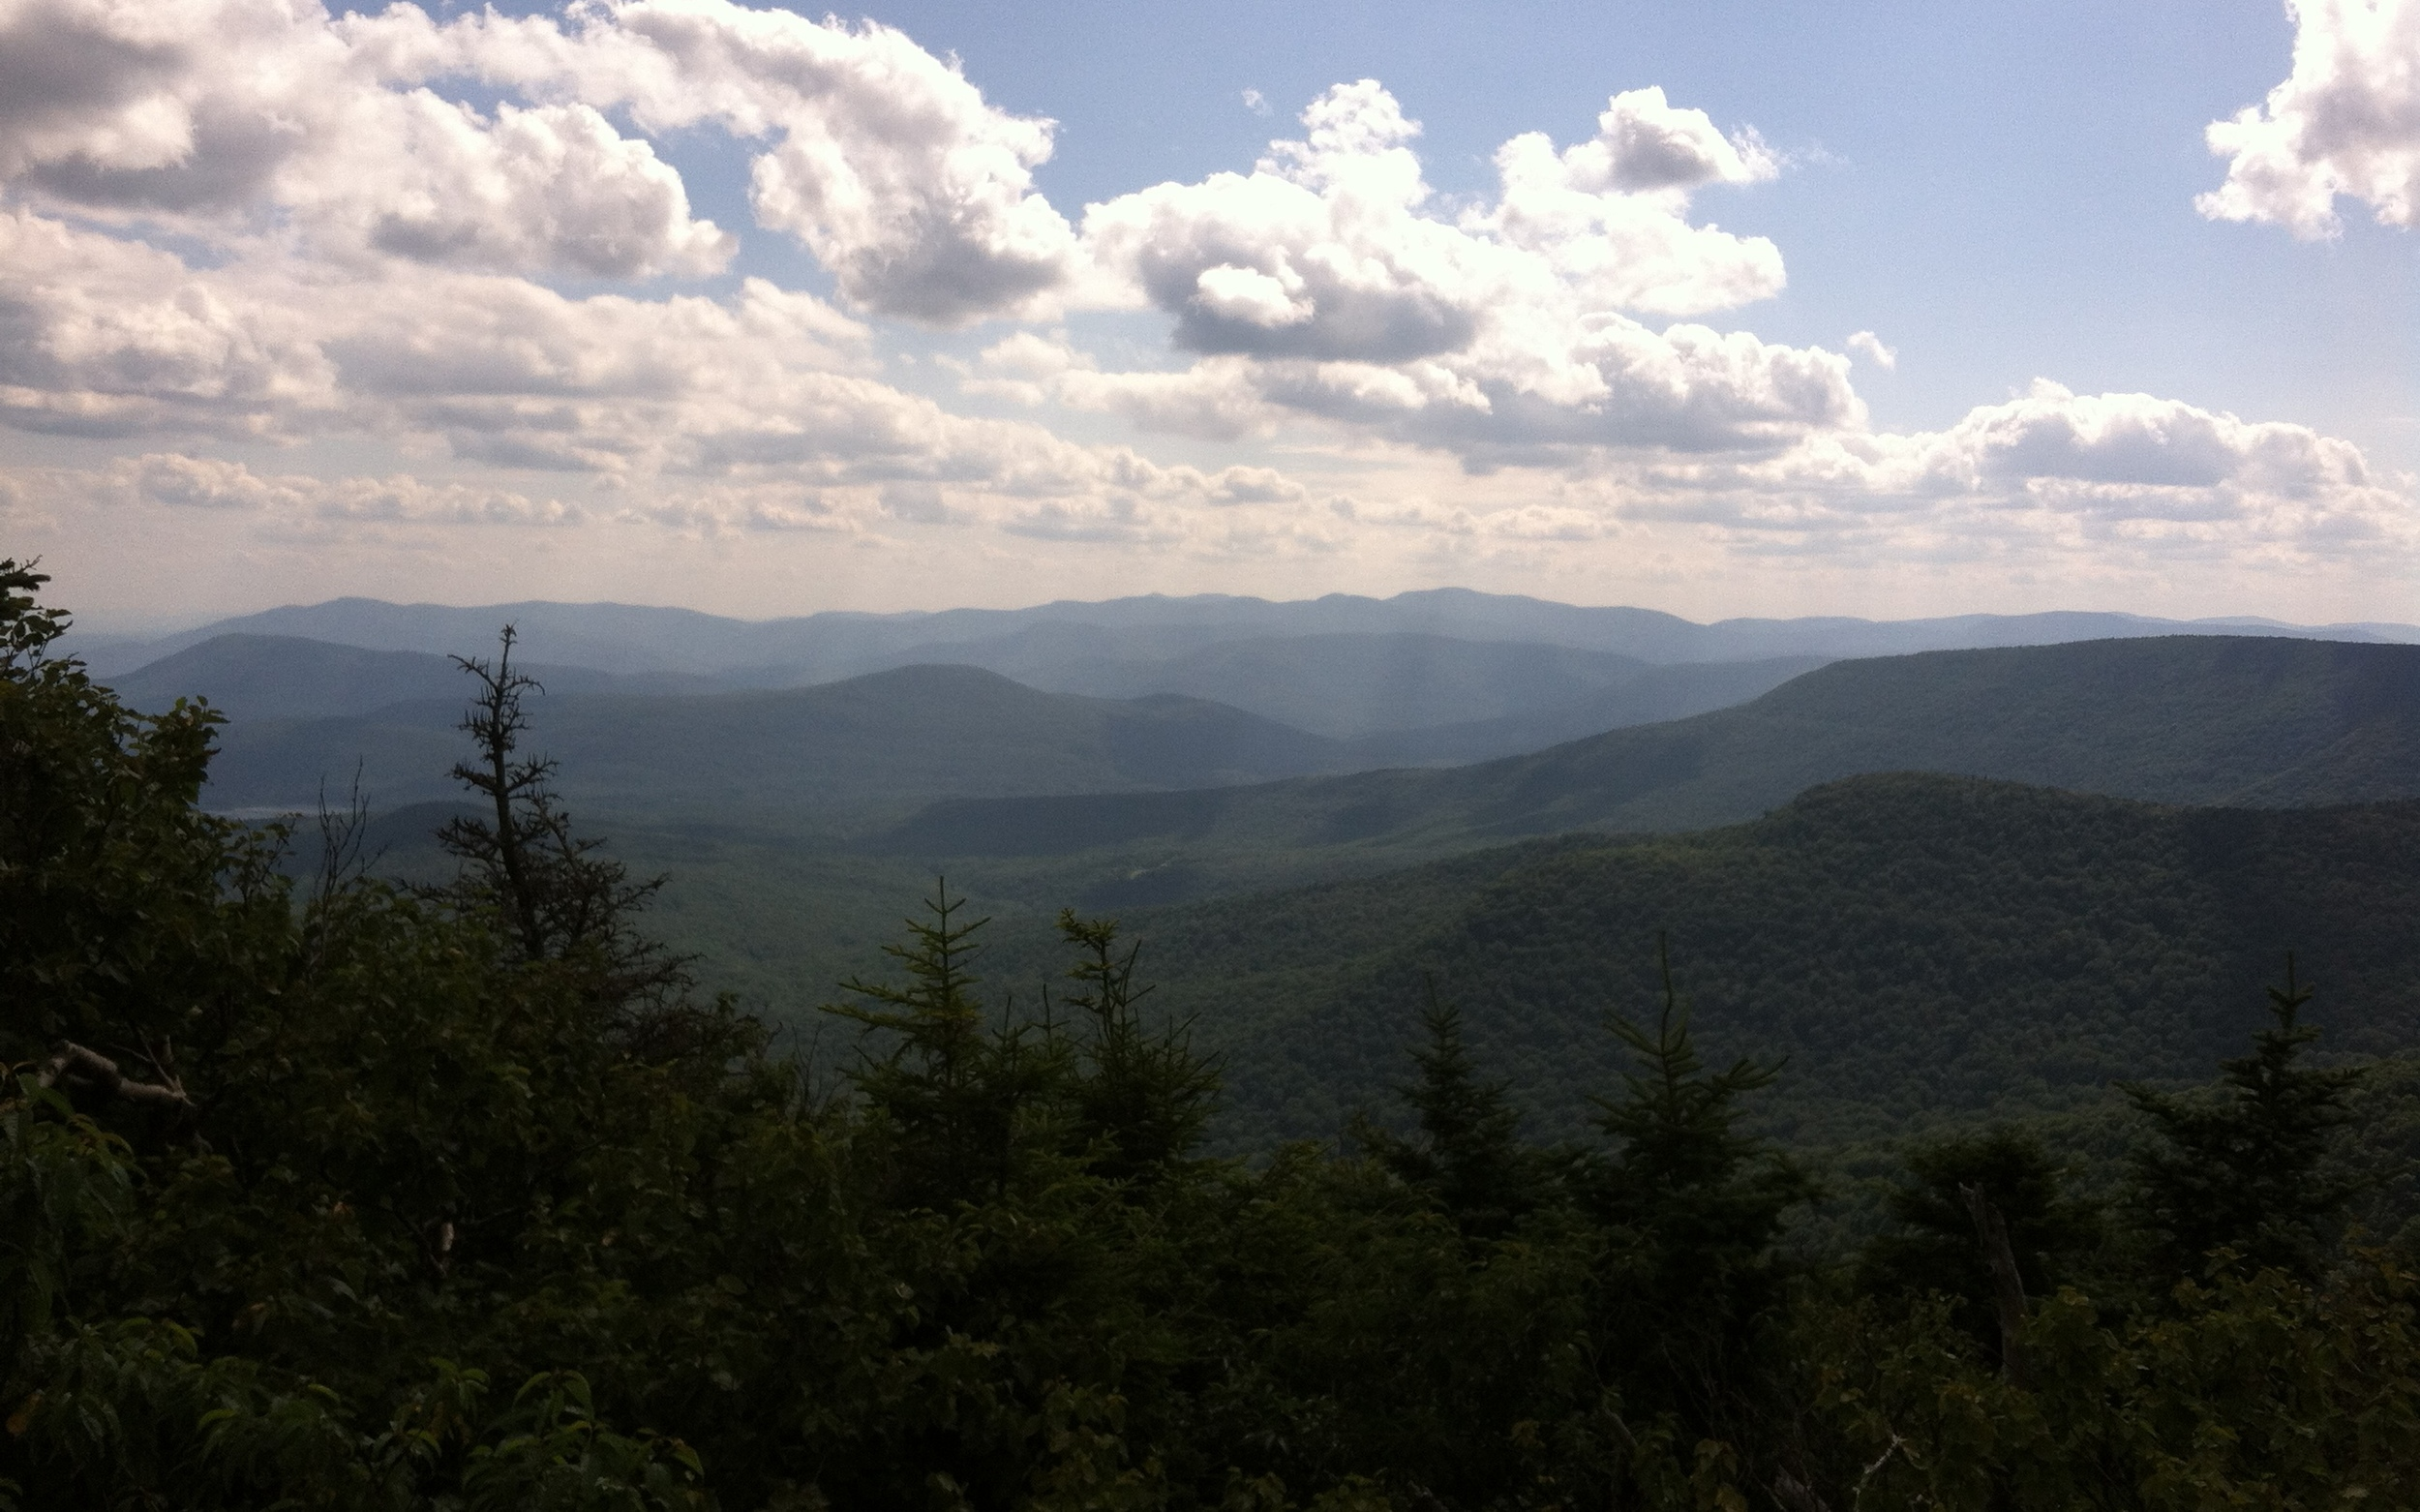 View from the Catskill Mountains